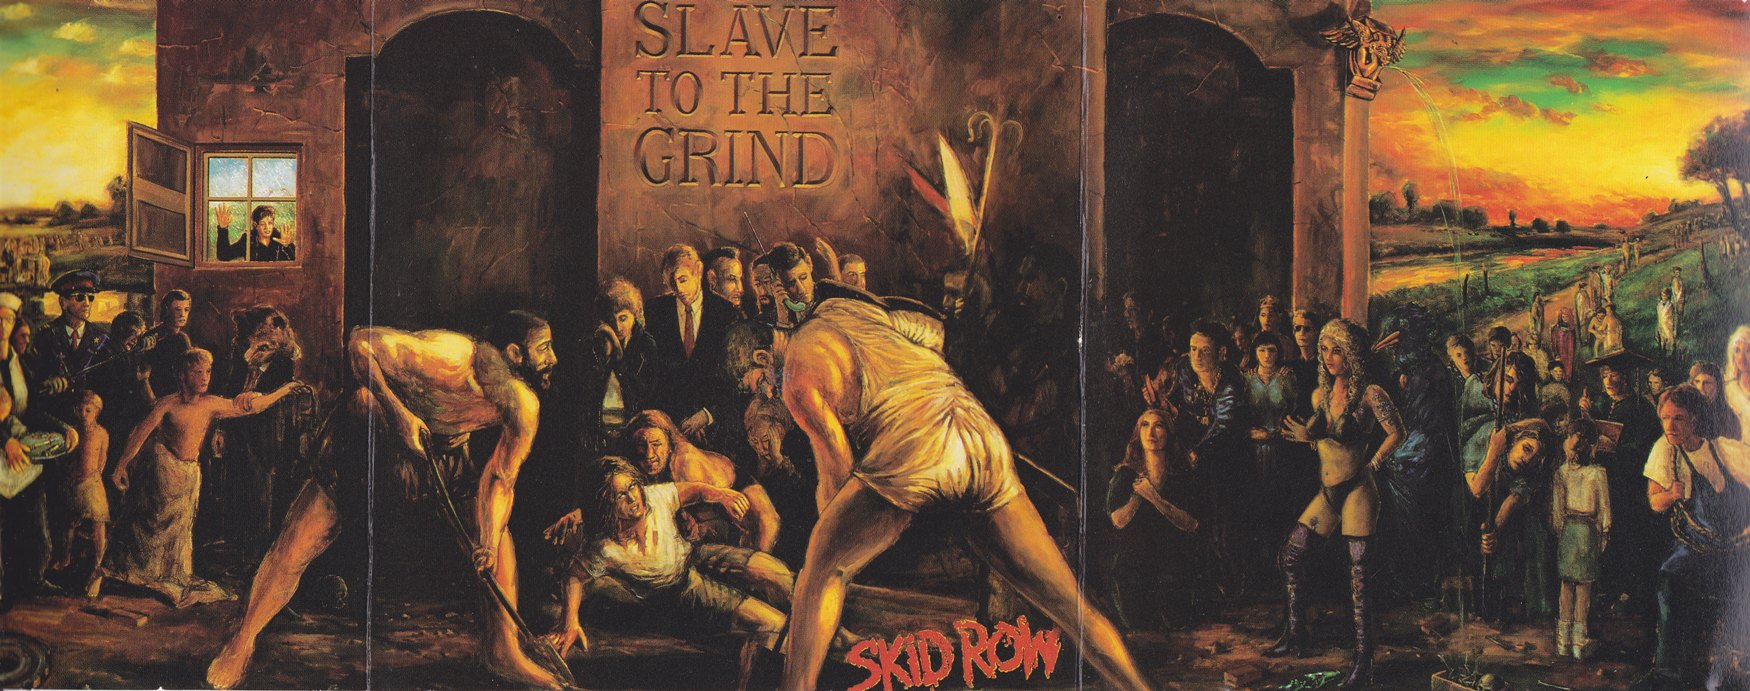 cd skid row slave to the grind